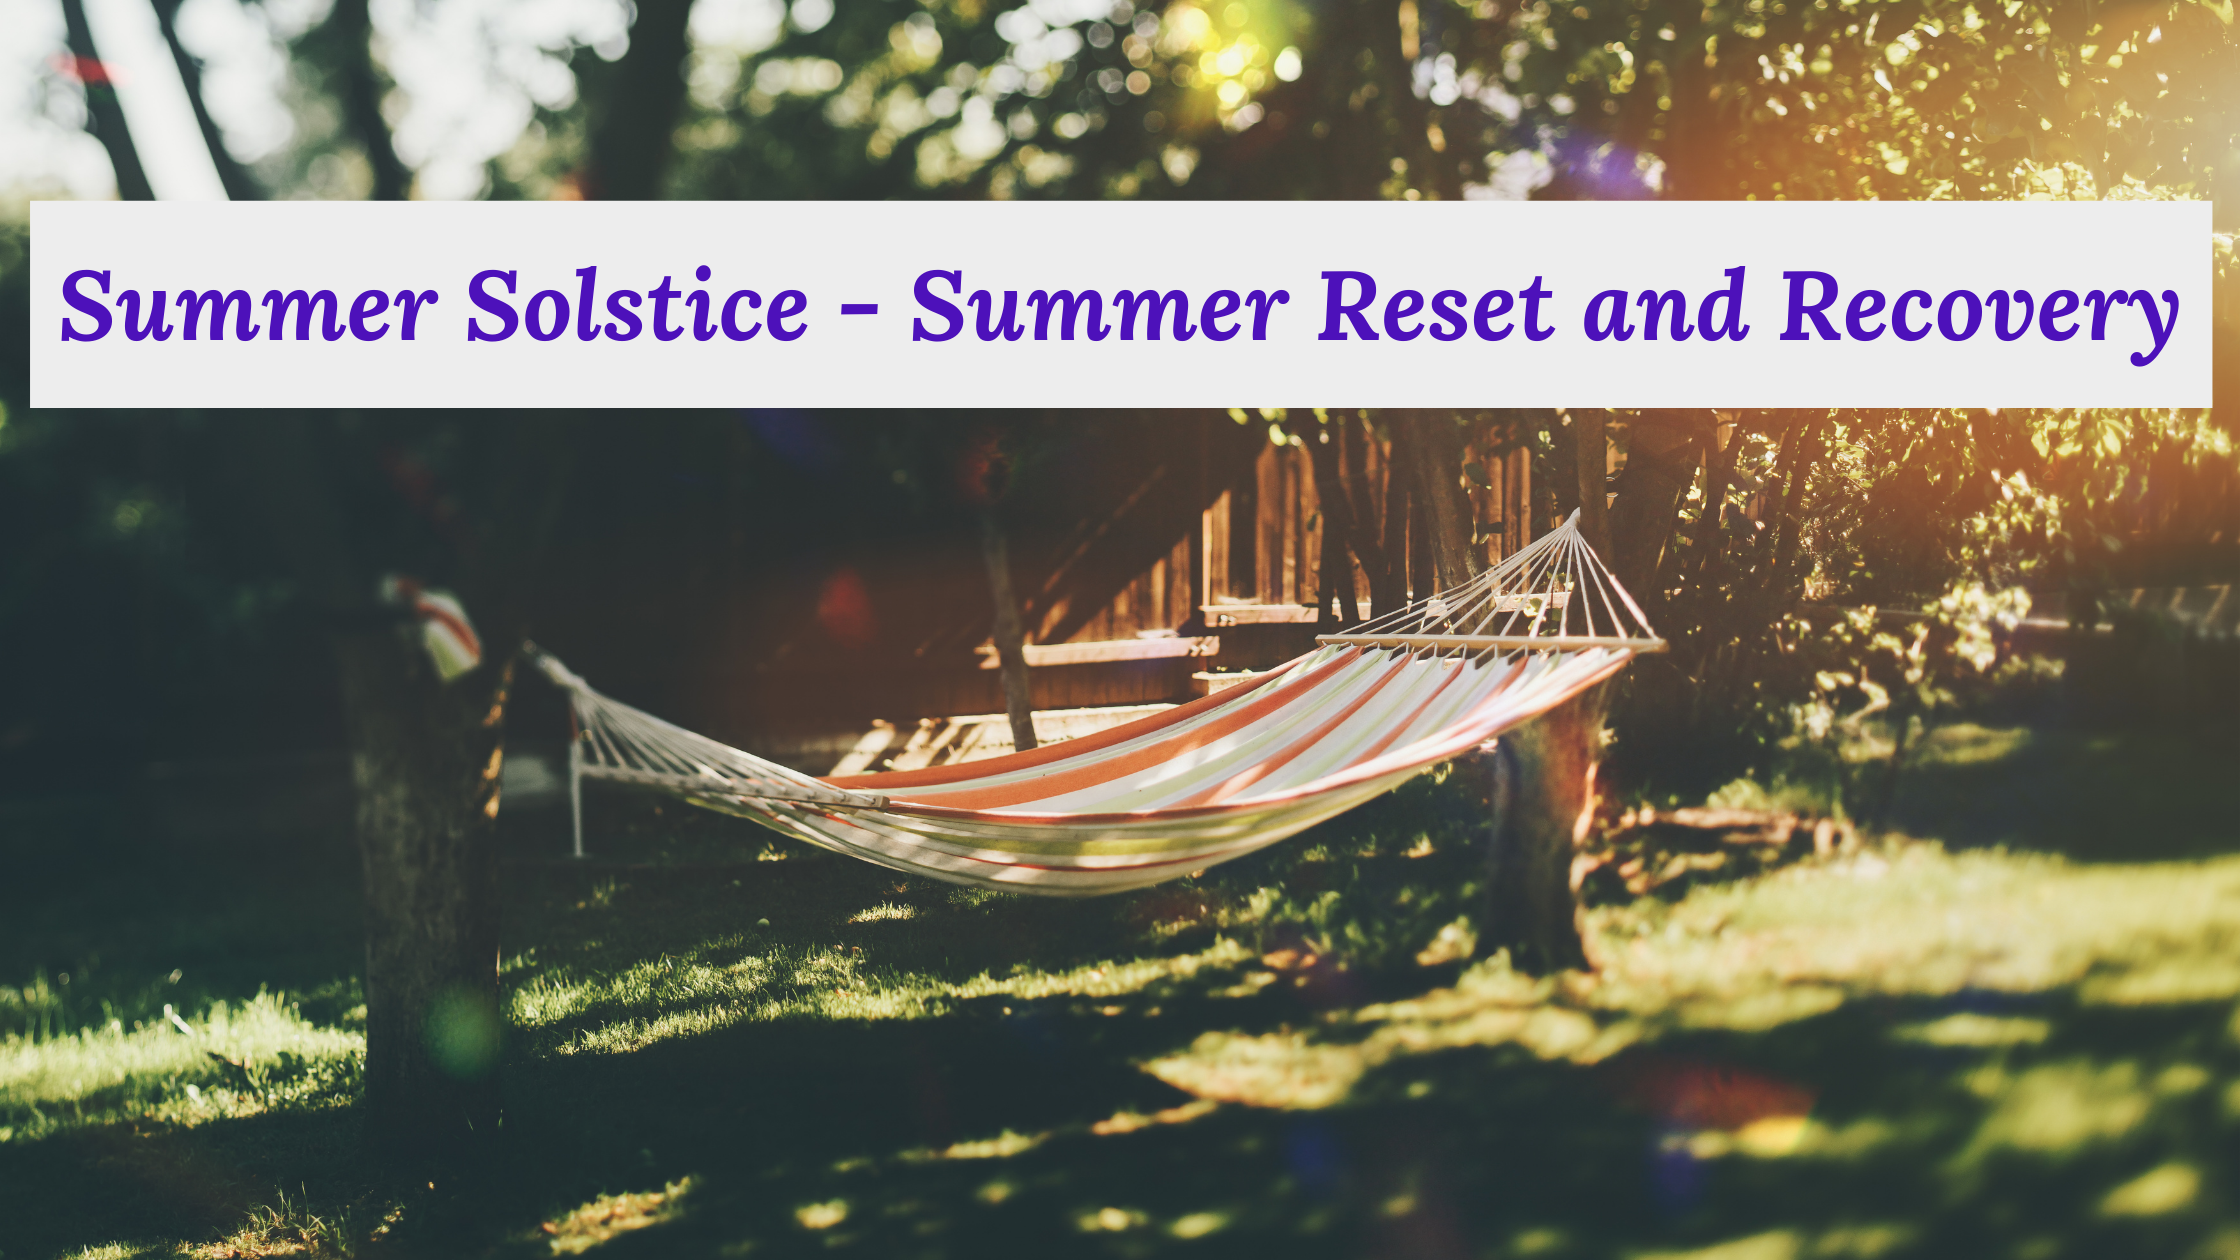 Picture of a hammock hanging between trees in a backyard with a banner at the top reading Summer Solstice - Summer Reset and Recovery